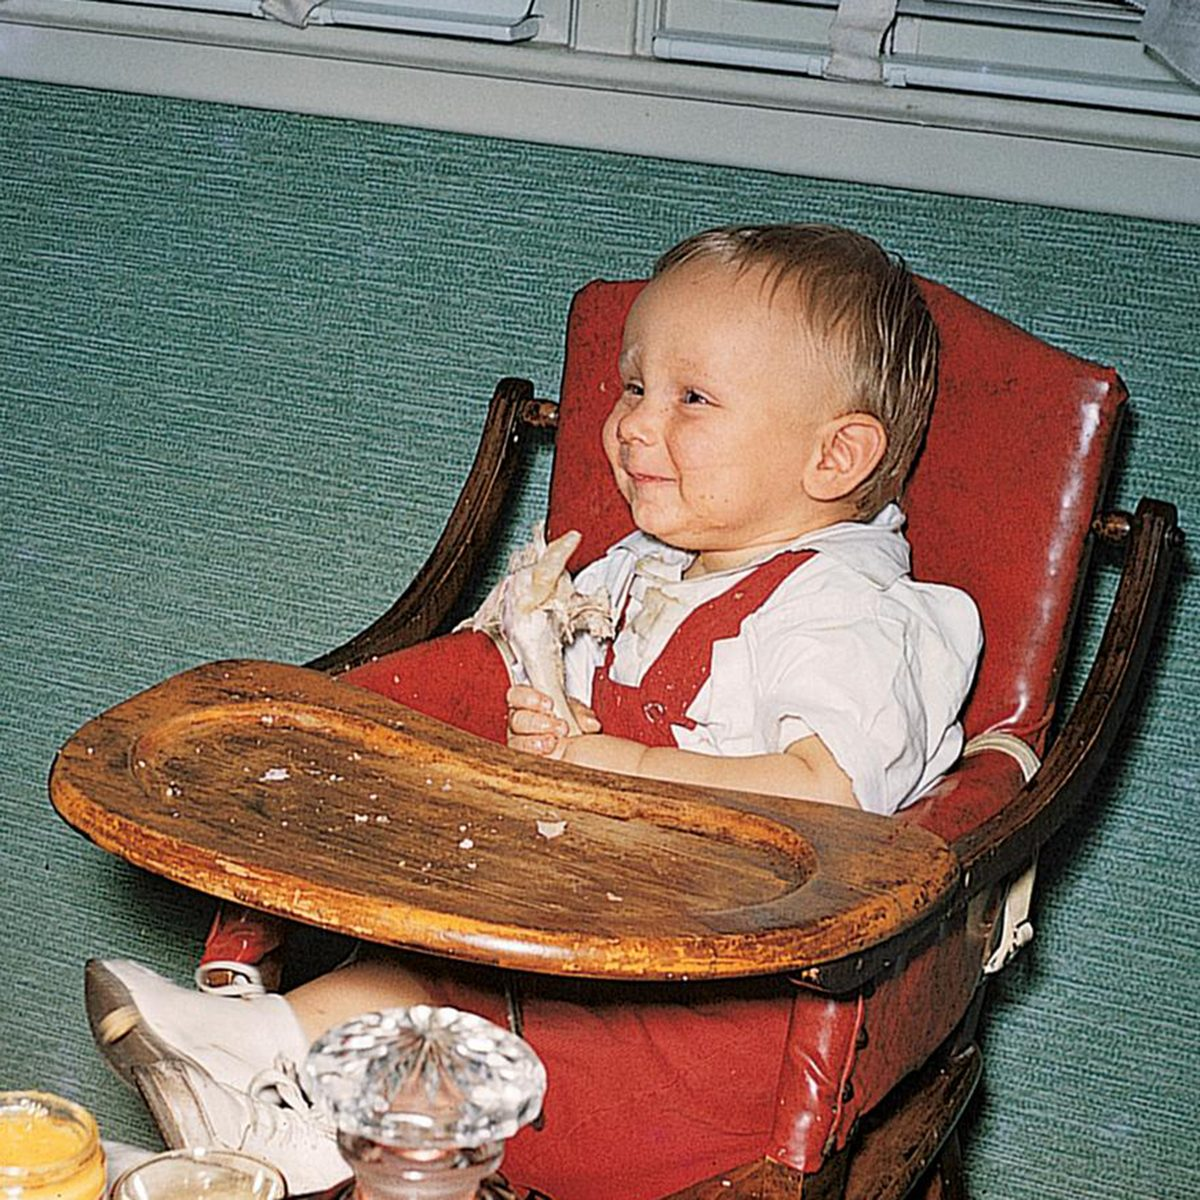 Infant boy smiles as he eats a turkey leg in his high chair on his first thanksgiving